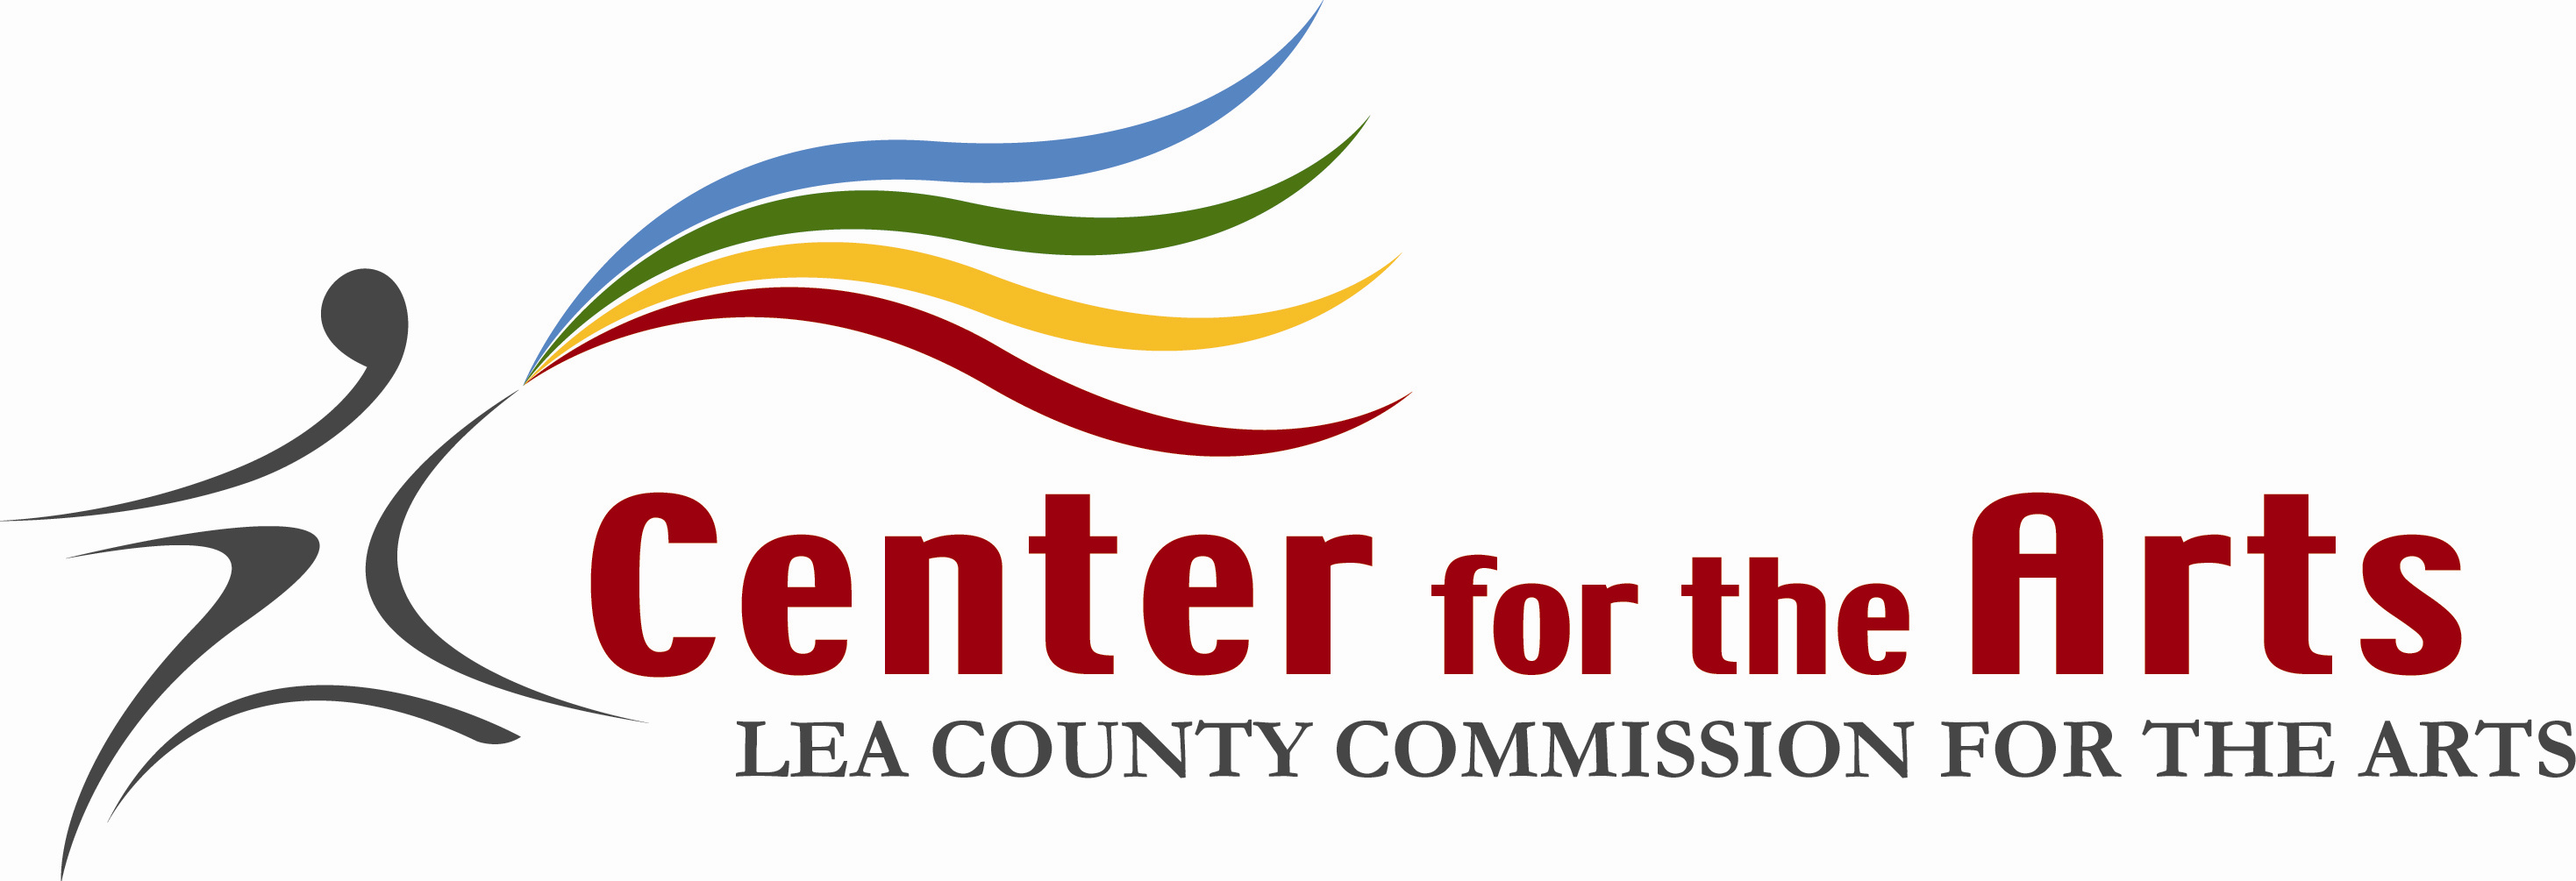 Lea County Center for the Arts Box Office